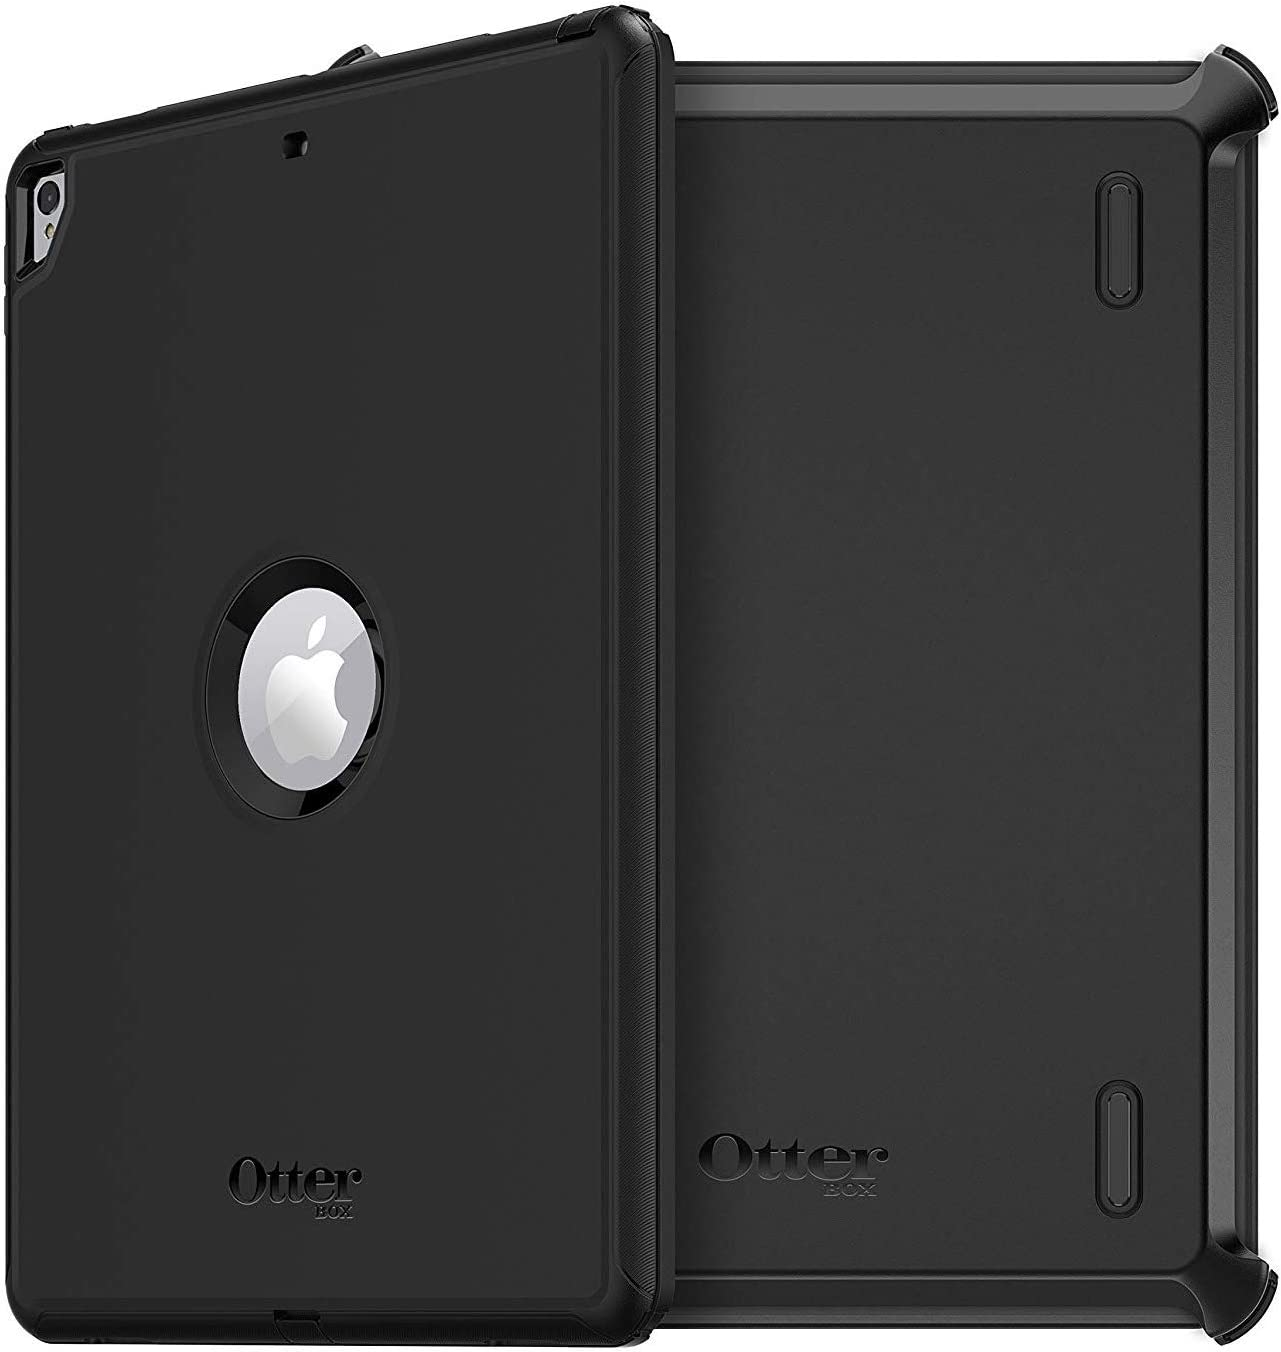 OtterBox Defender Series Case for Apple iPad PRO 12.9 inch (2nd Generation - 2017) Non-Retail Packaging - Black